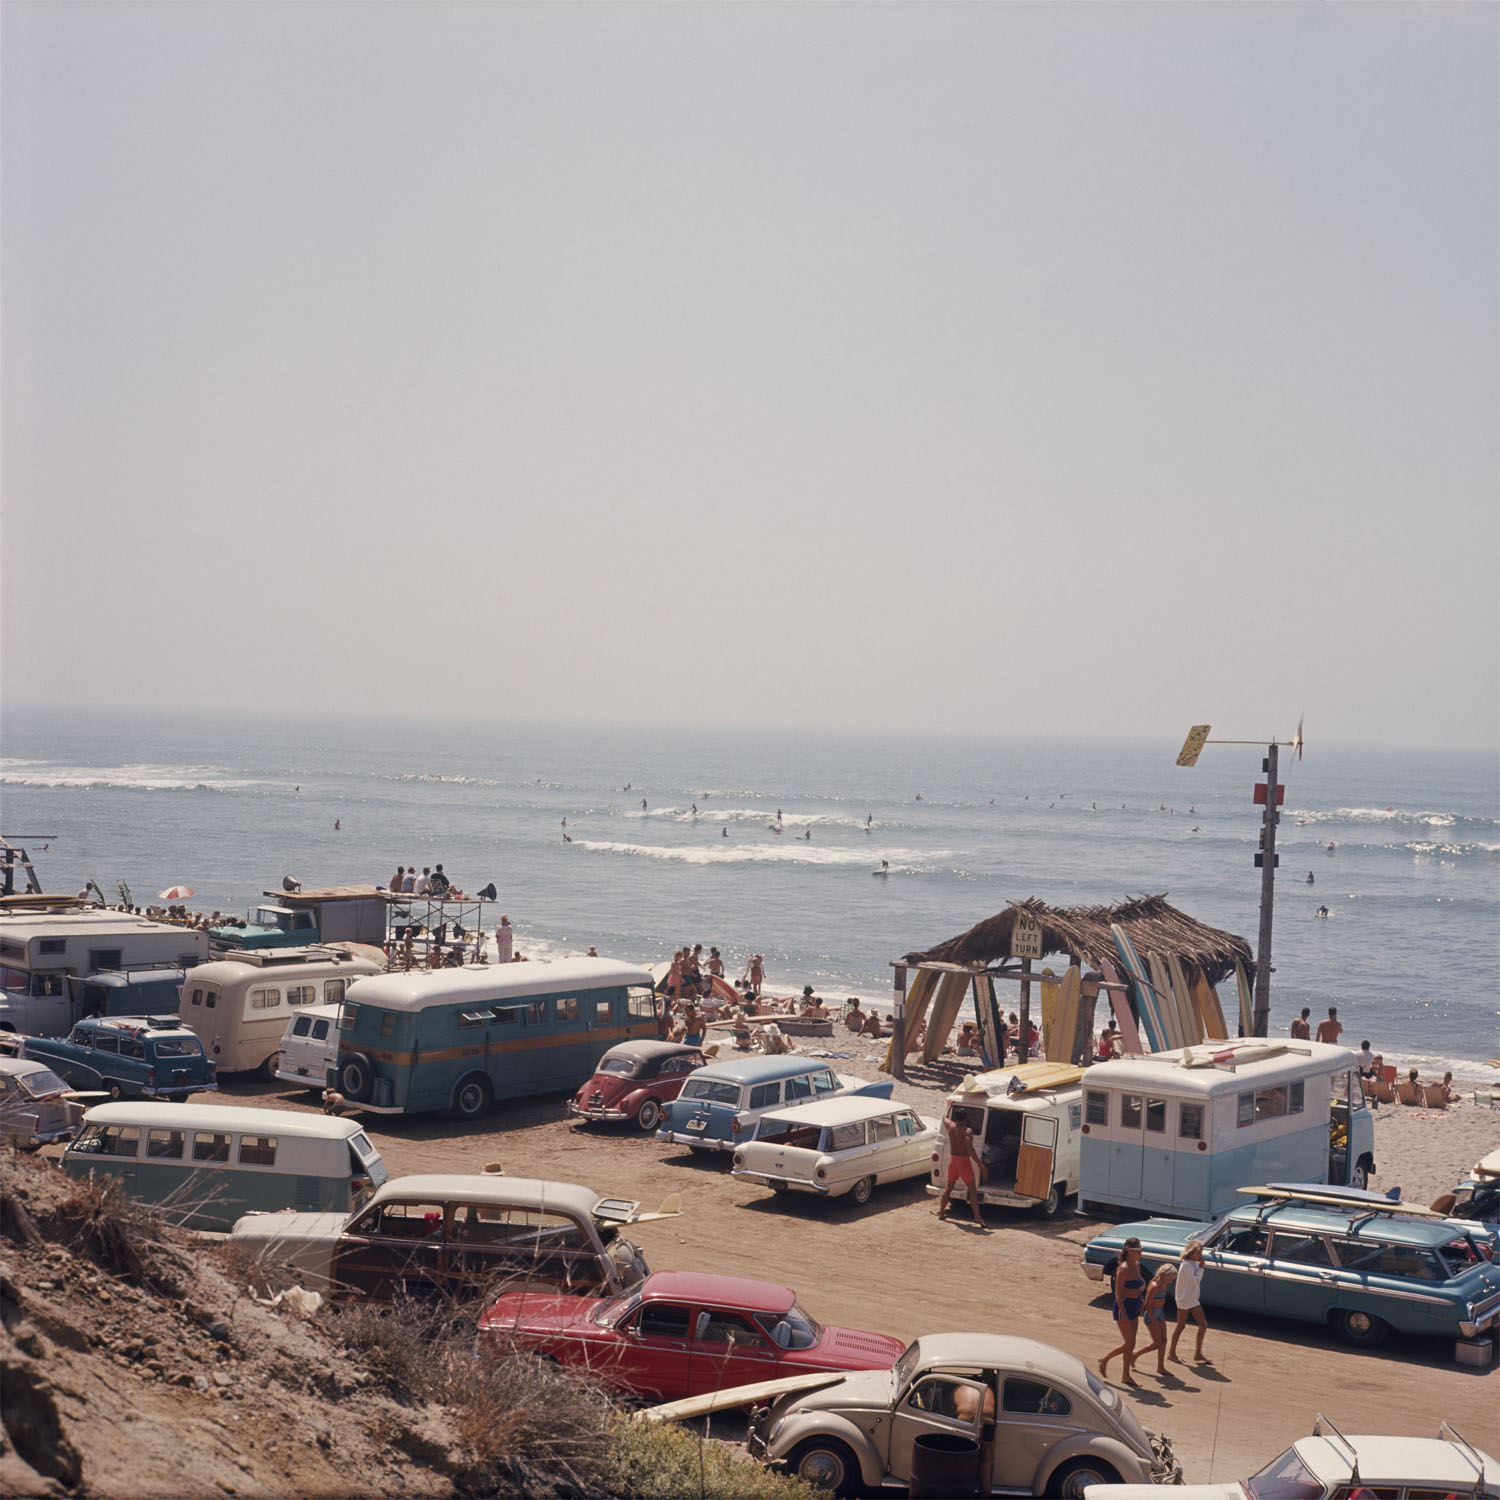 Club Surfing Contest, San Onofre, 1963